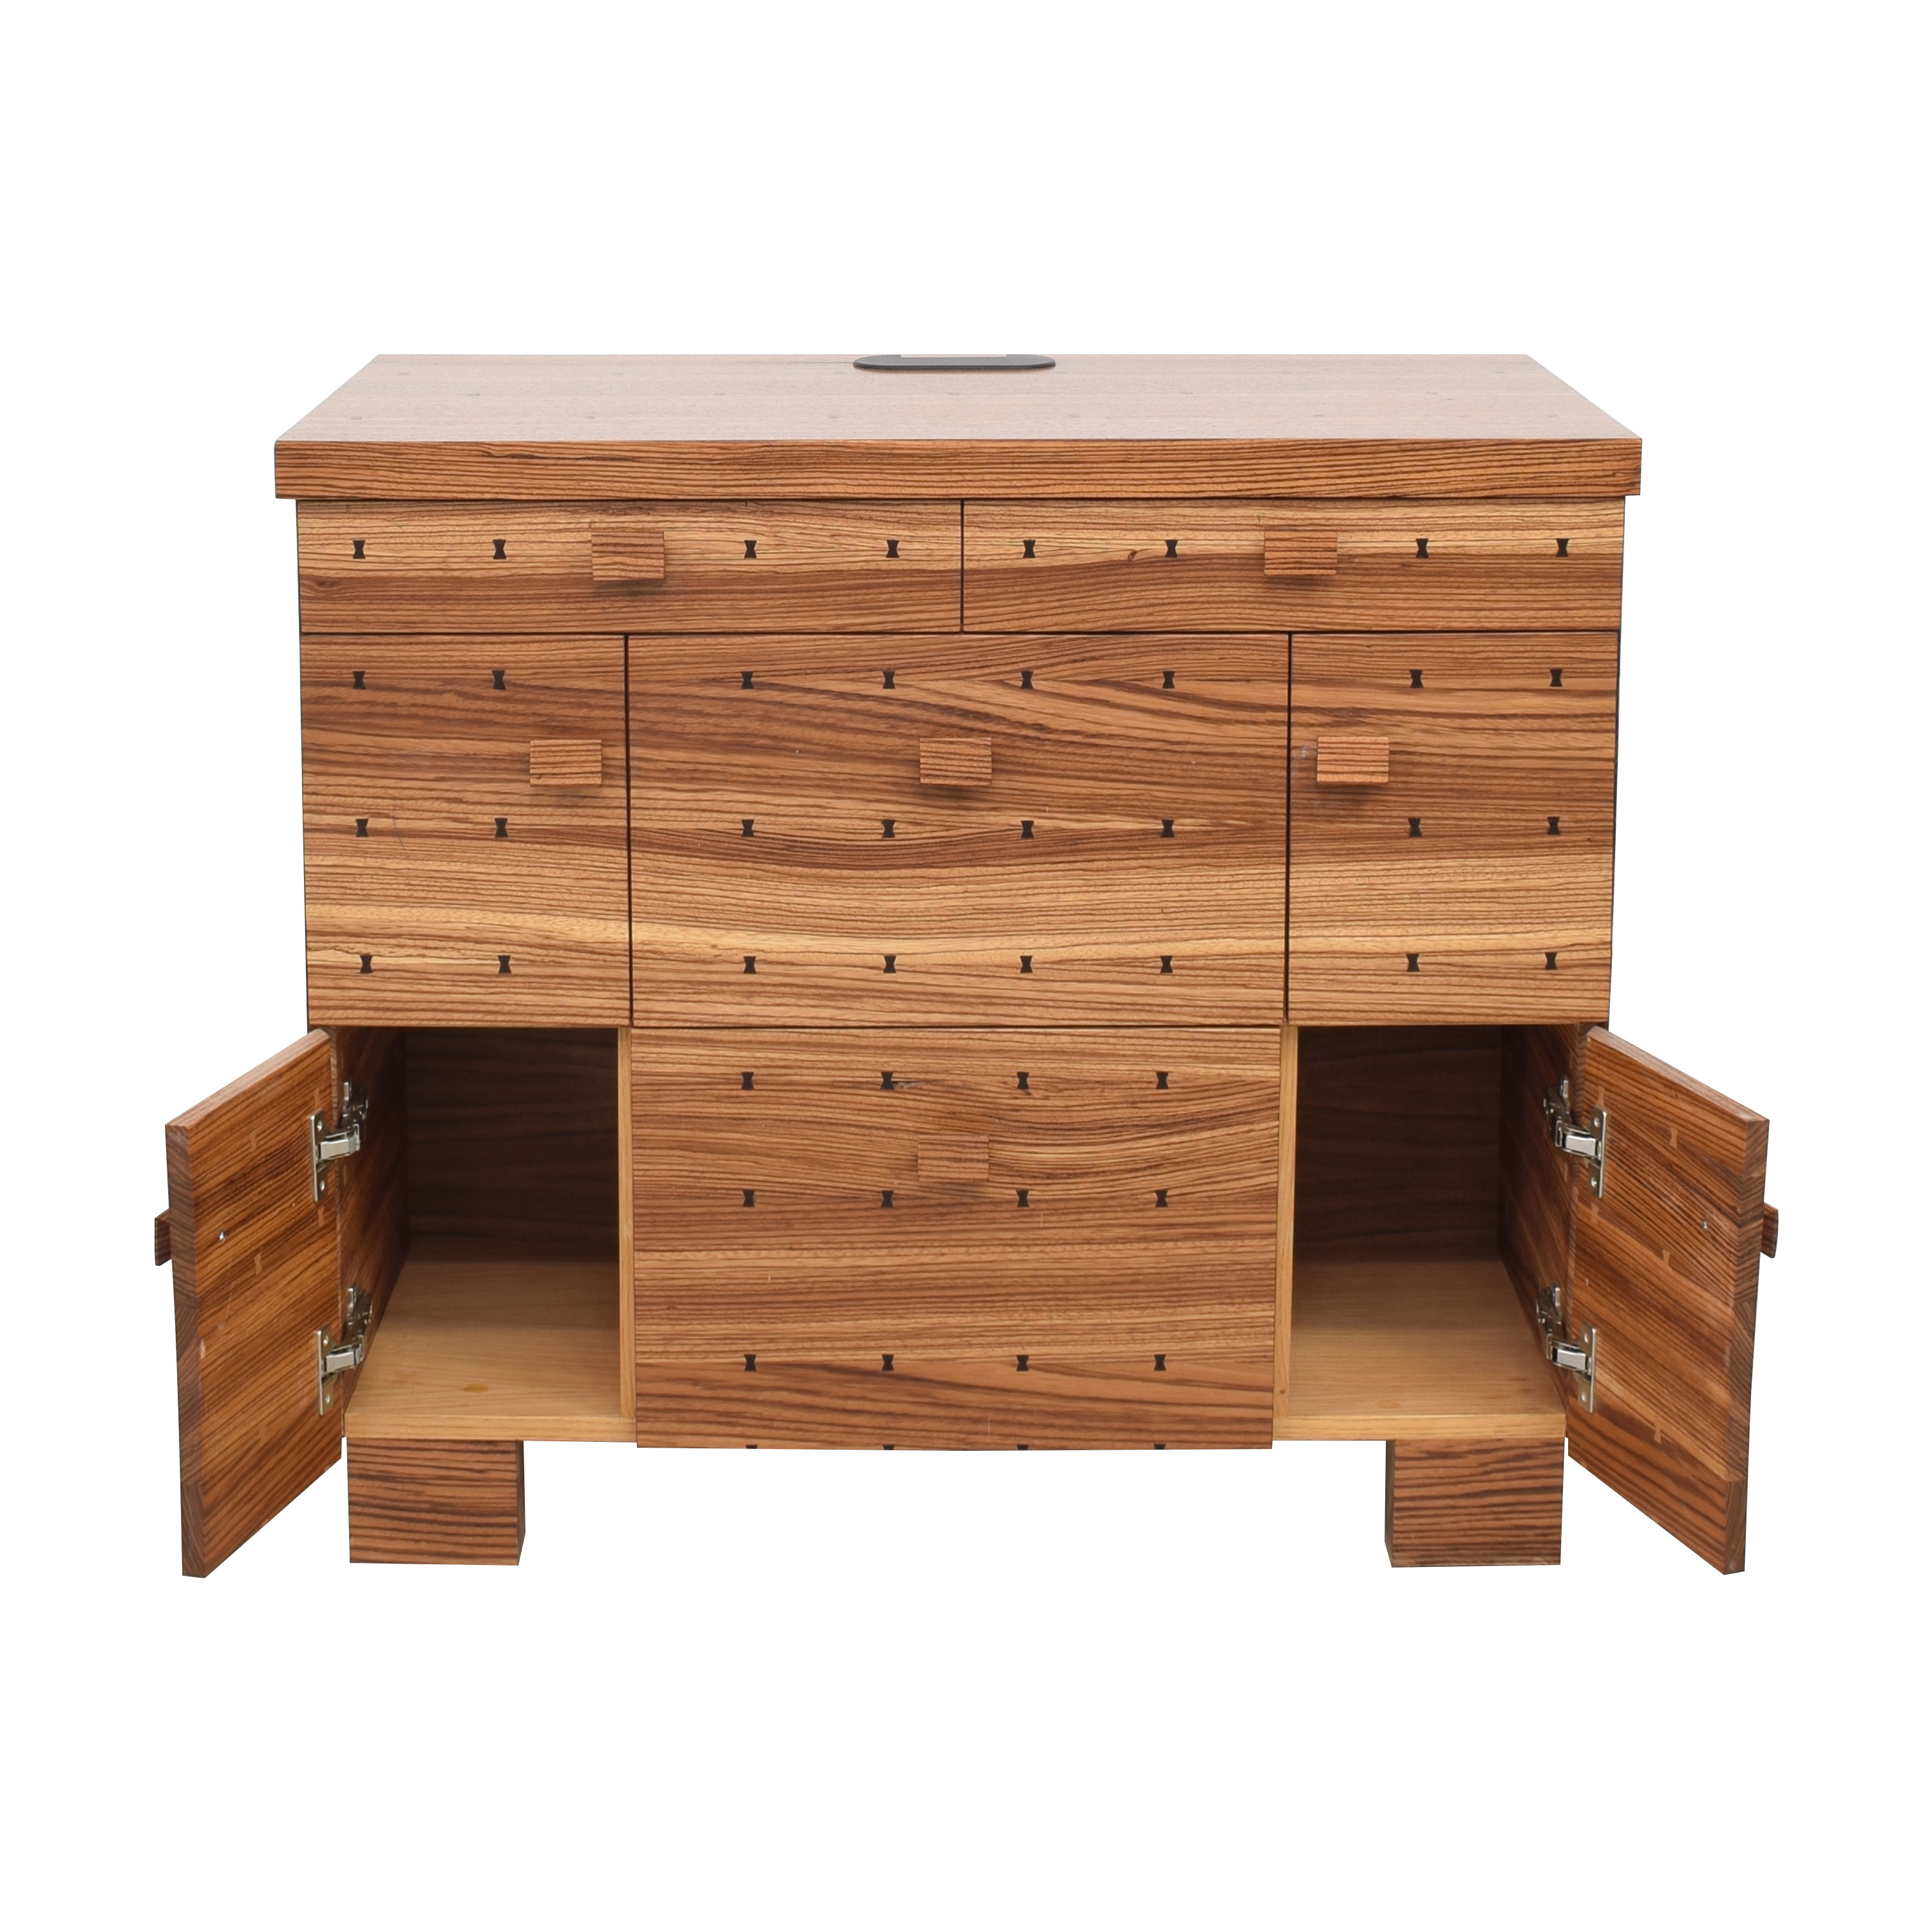 Storage Nightstand with Bowtie Inlay Design End Tables